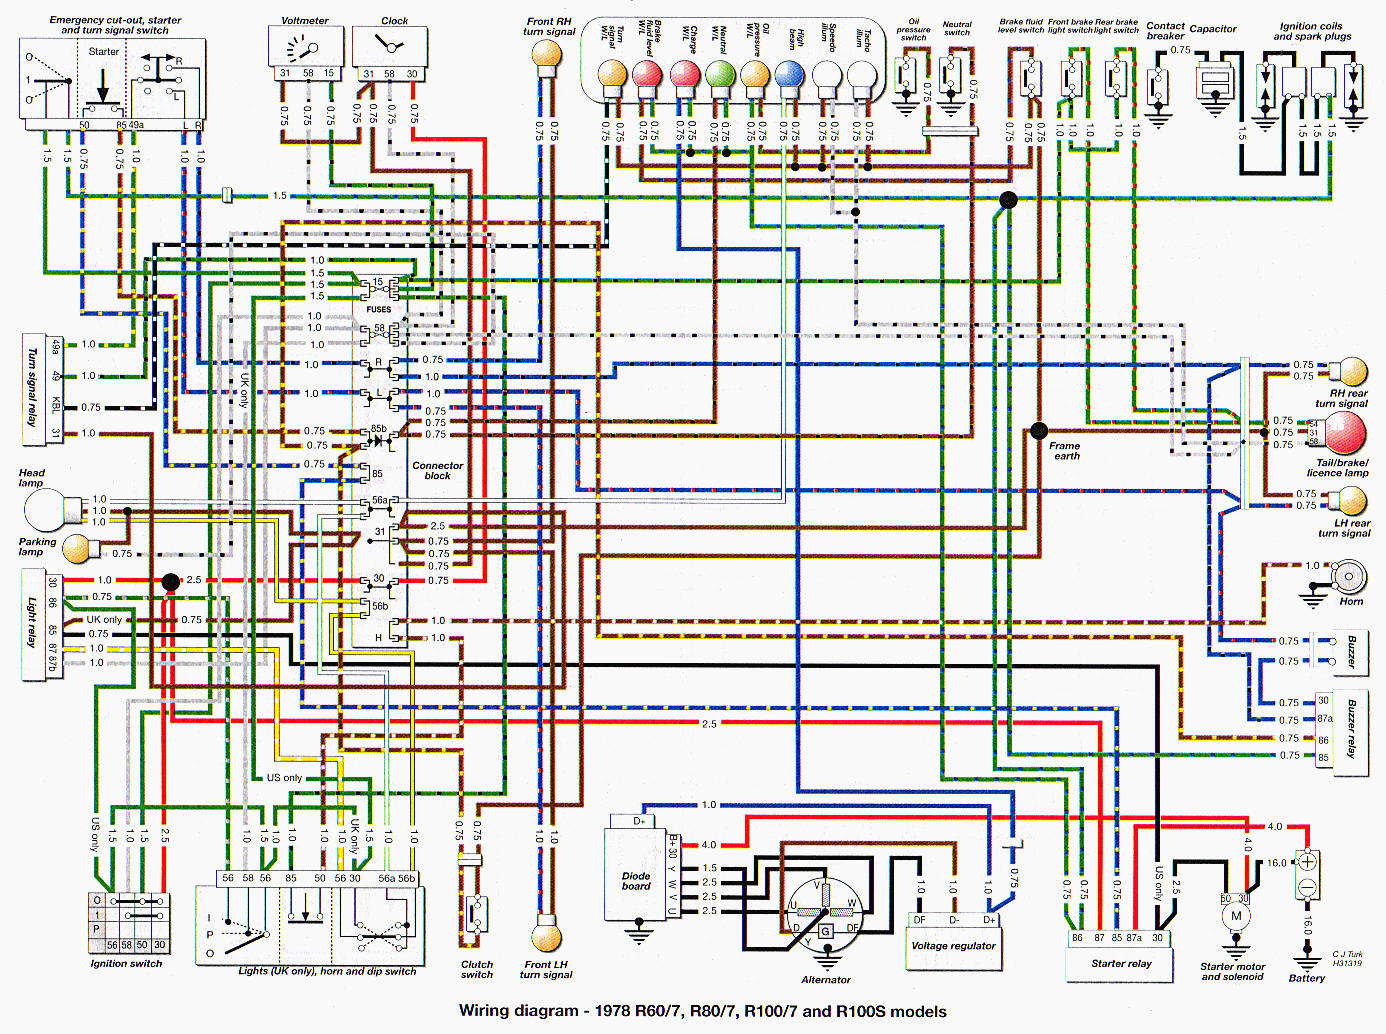 hight resolution of bmw k1200gt wiring diagram wiring diagram bmw k 1200 gt wiring diagram cool wiring diagramsbmw k